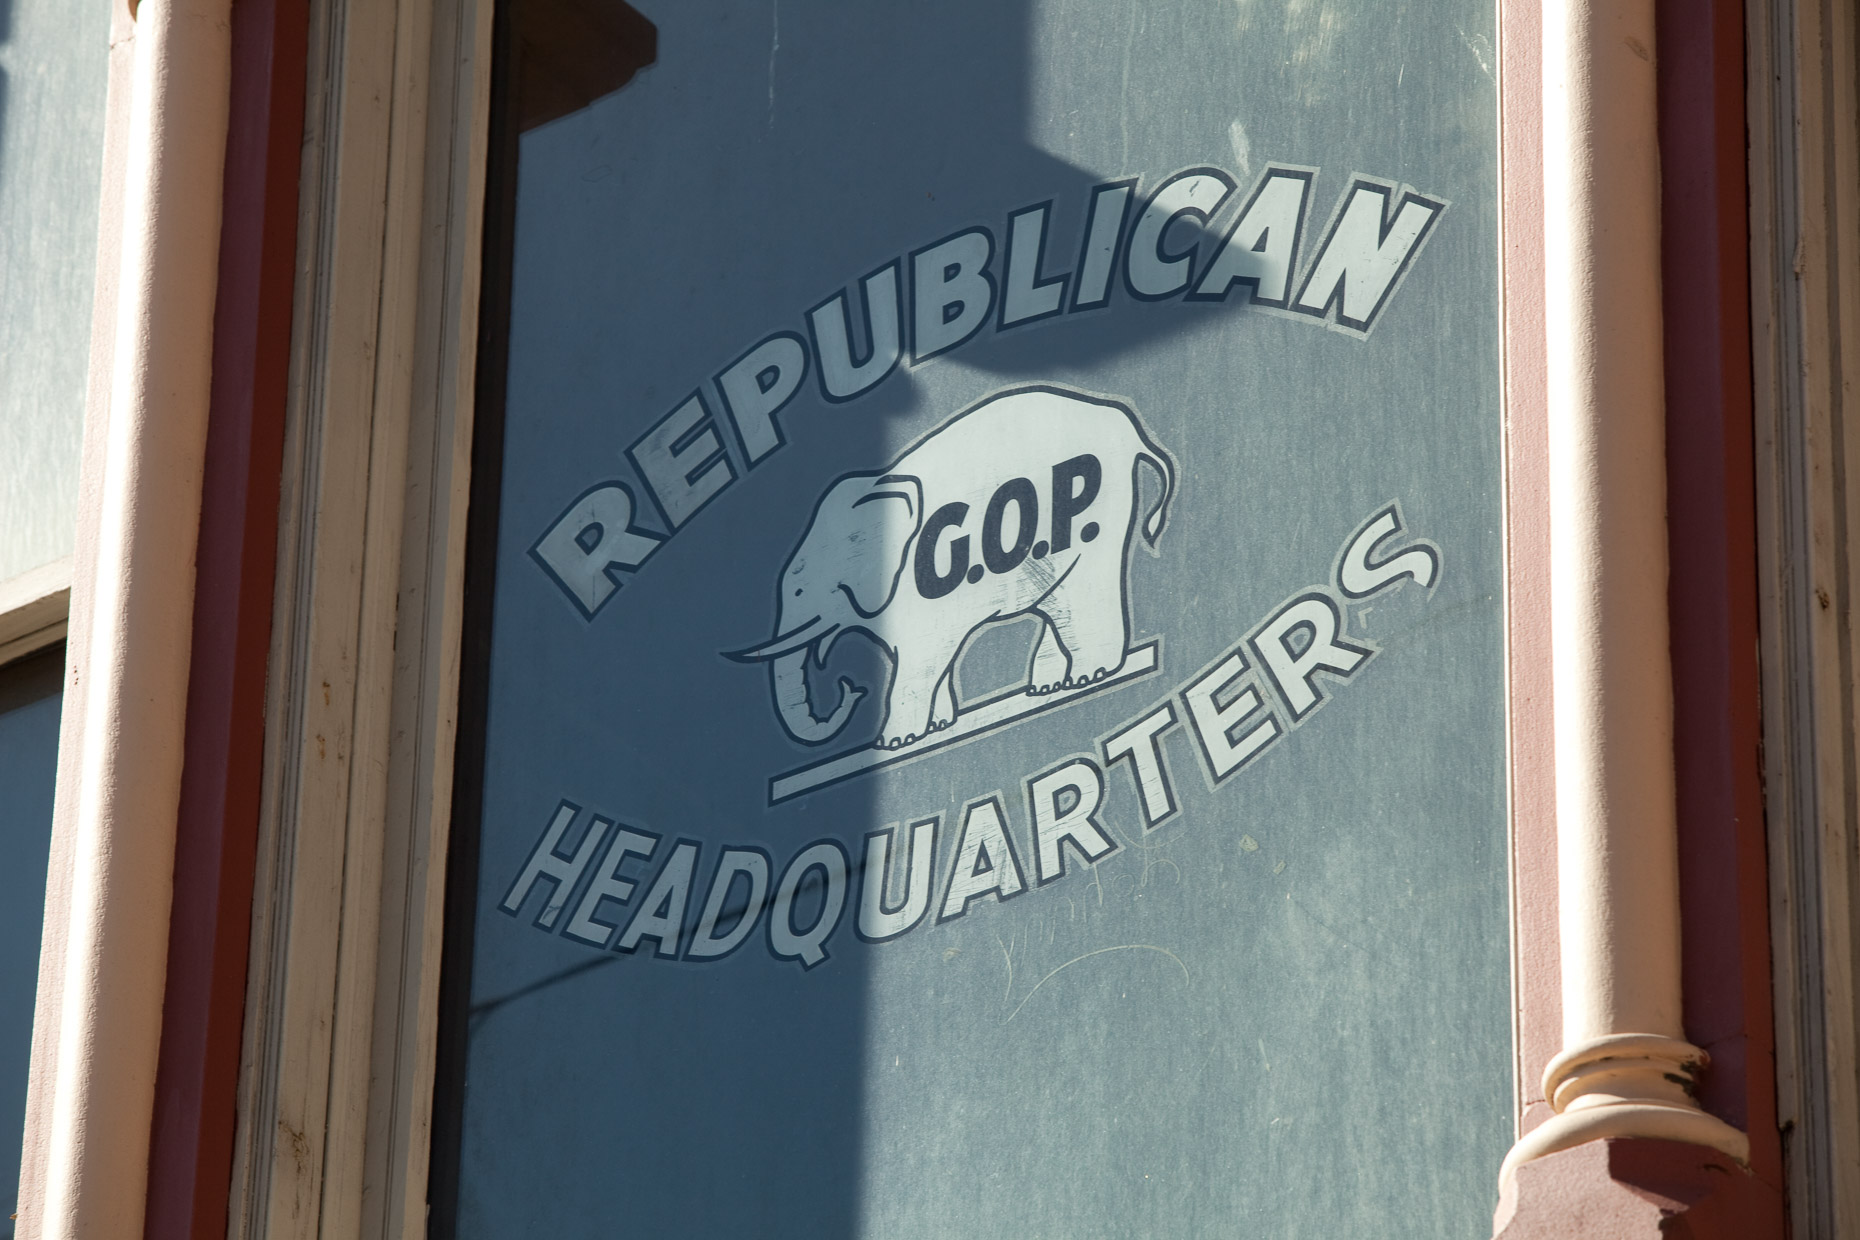 REPUBLICAN HEADQUARTERS sign on window with elephant by David Zaitz